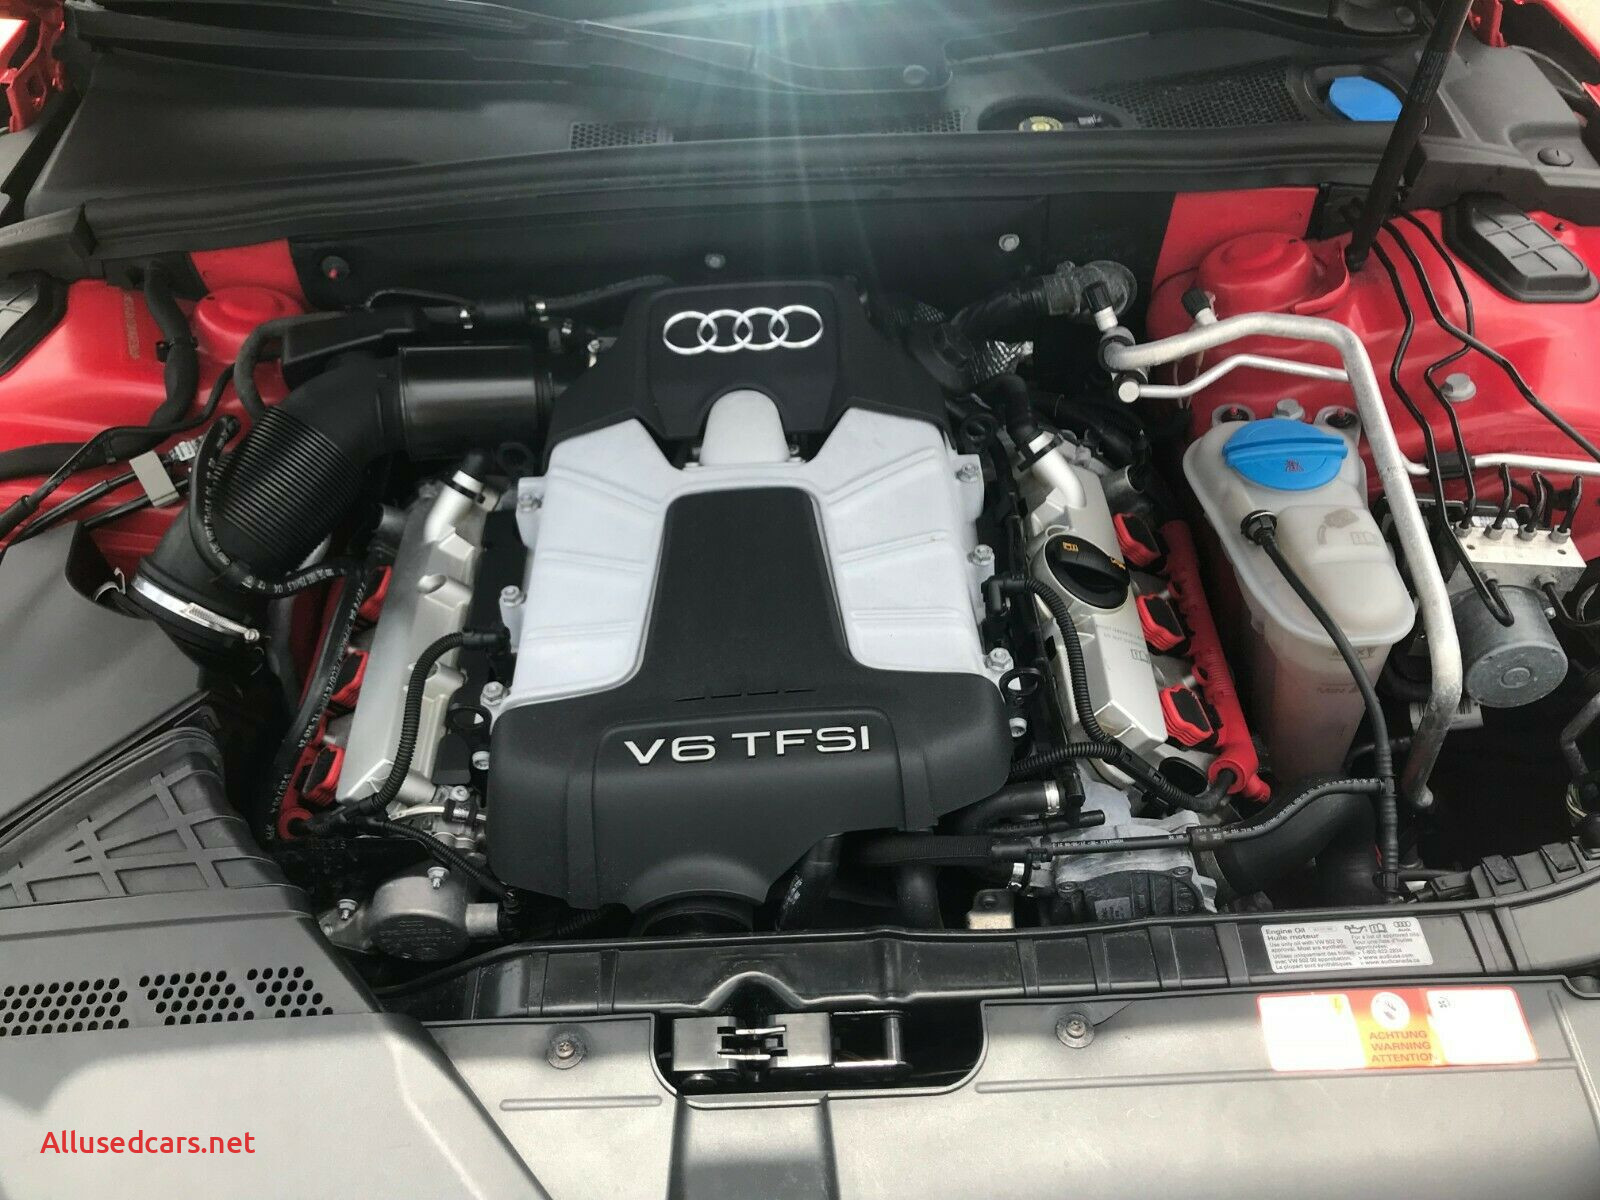 Audi Q7 2015 New Audi S5 2010 for Sale Exterior Color Red